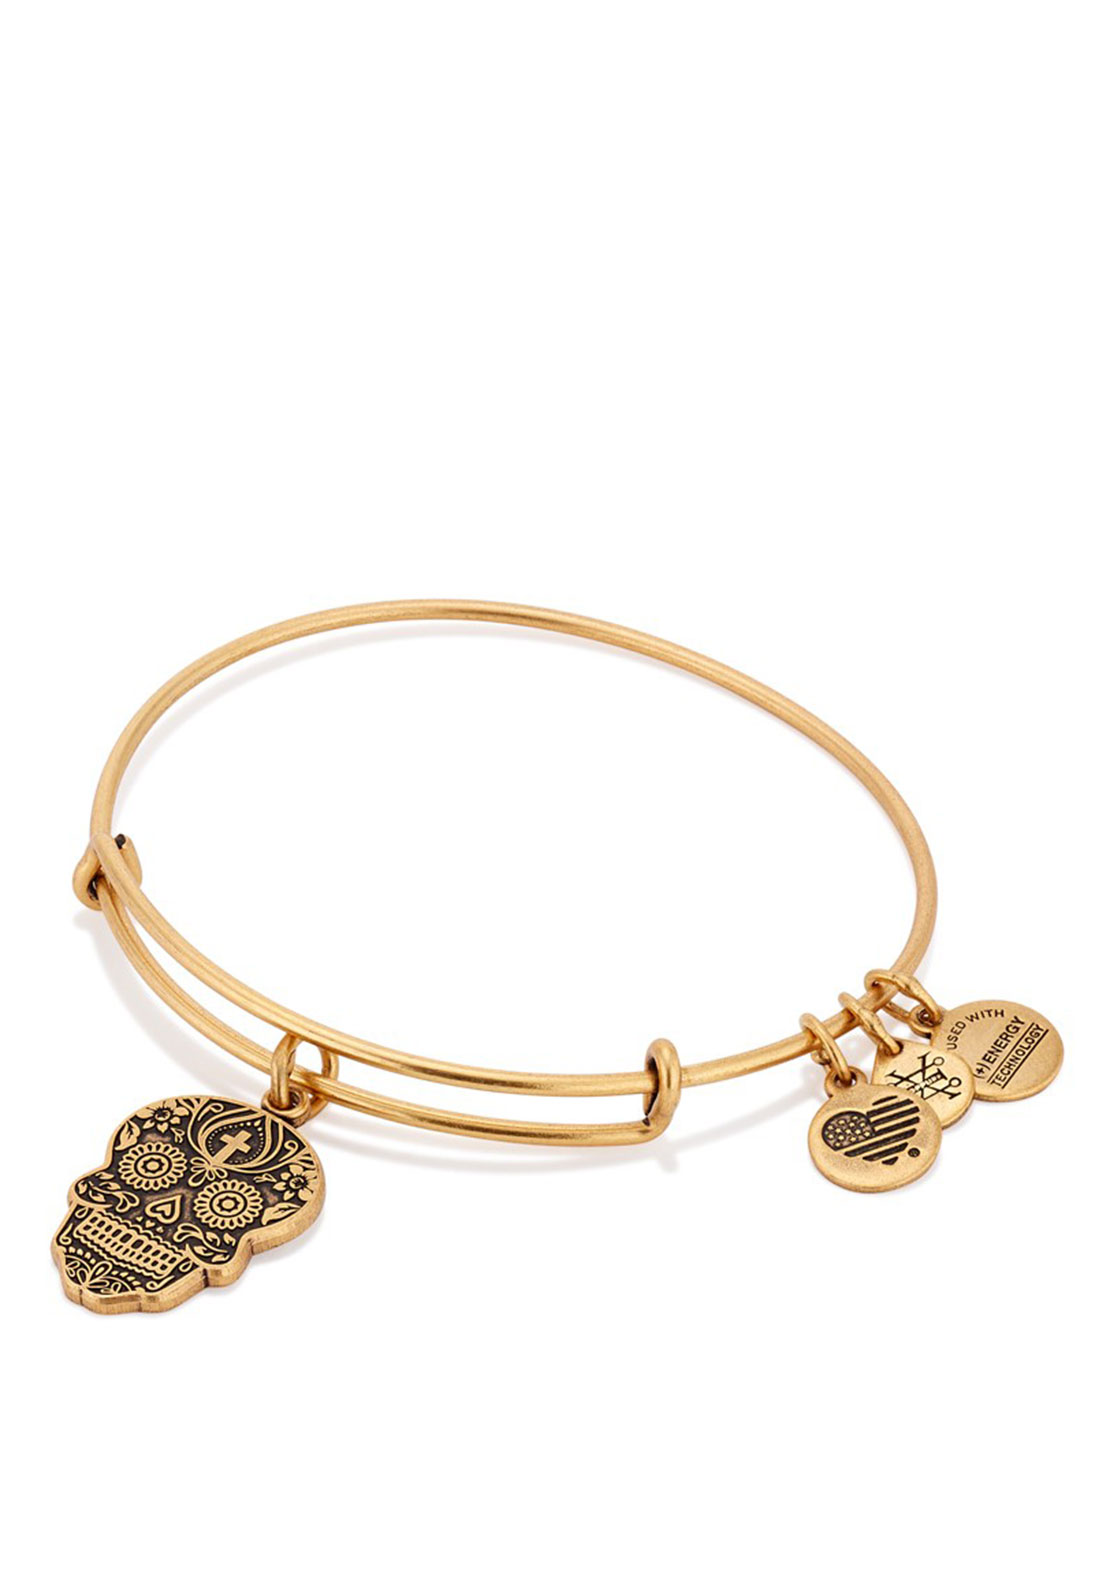 Alex and Ani Calvaera charm Bracelet, Gold Plated